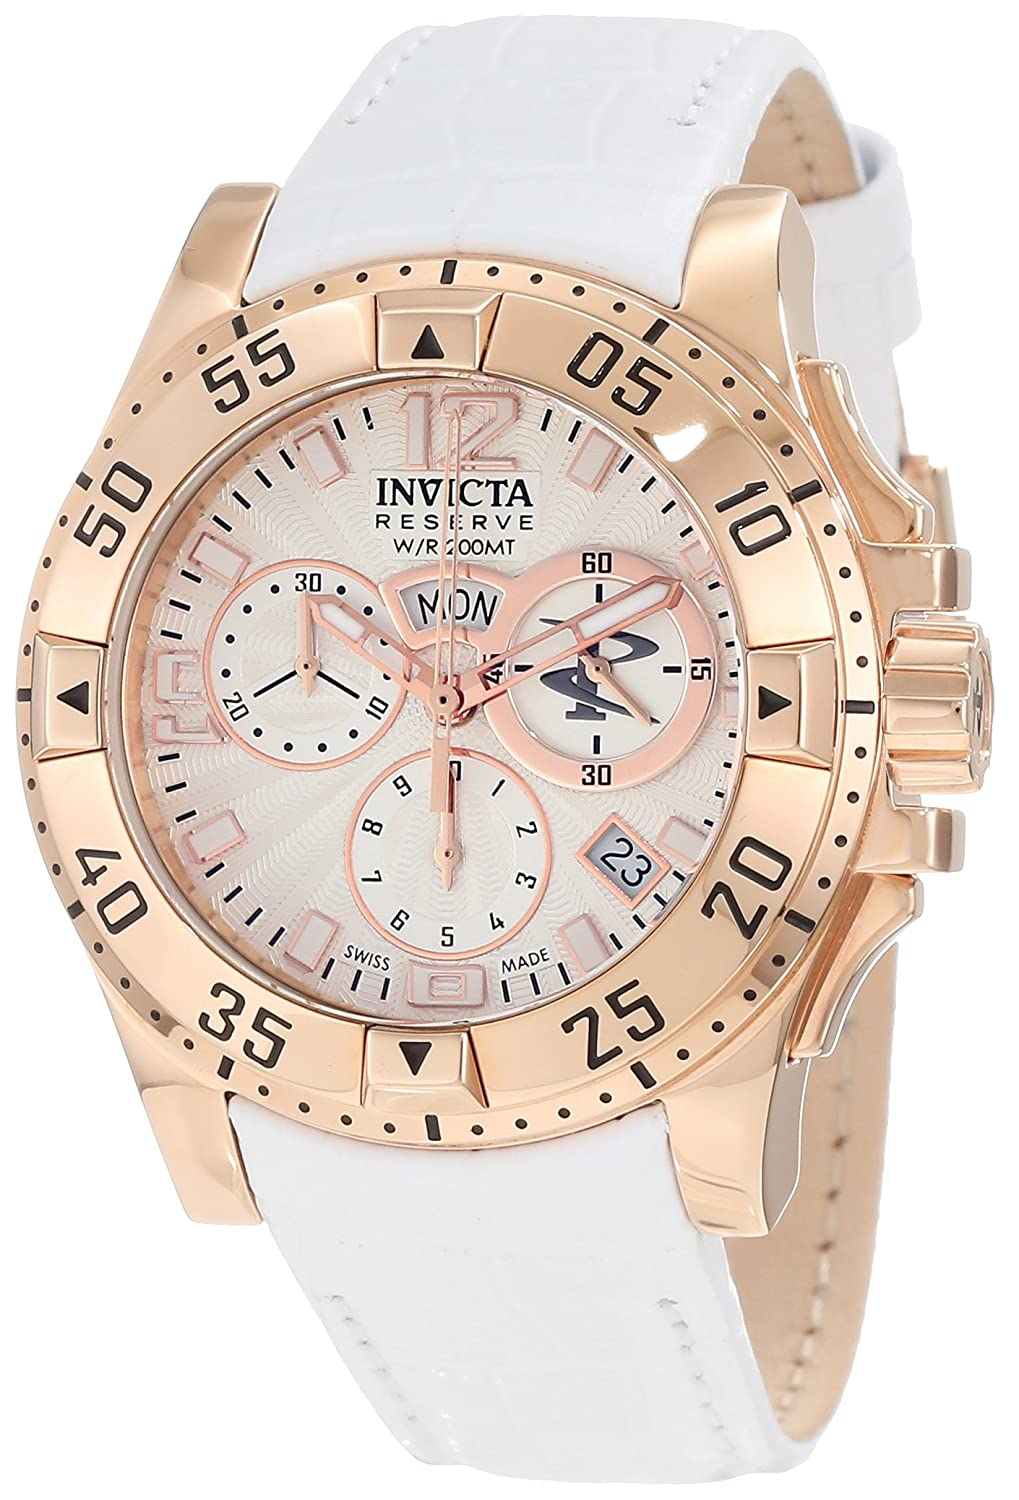 52ae8f13bd6 Huge discount watches online for mens and womens at Citywatches.ie in  Ireland.Discover amazing deals up to 70% off on Womens Invicta Watches.Buy  low price ...